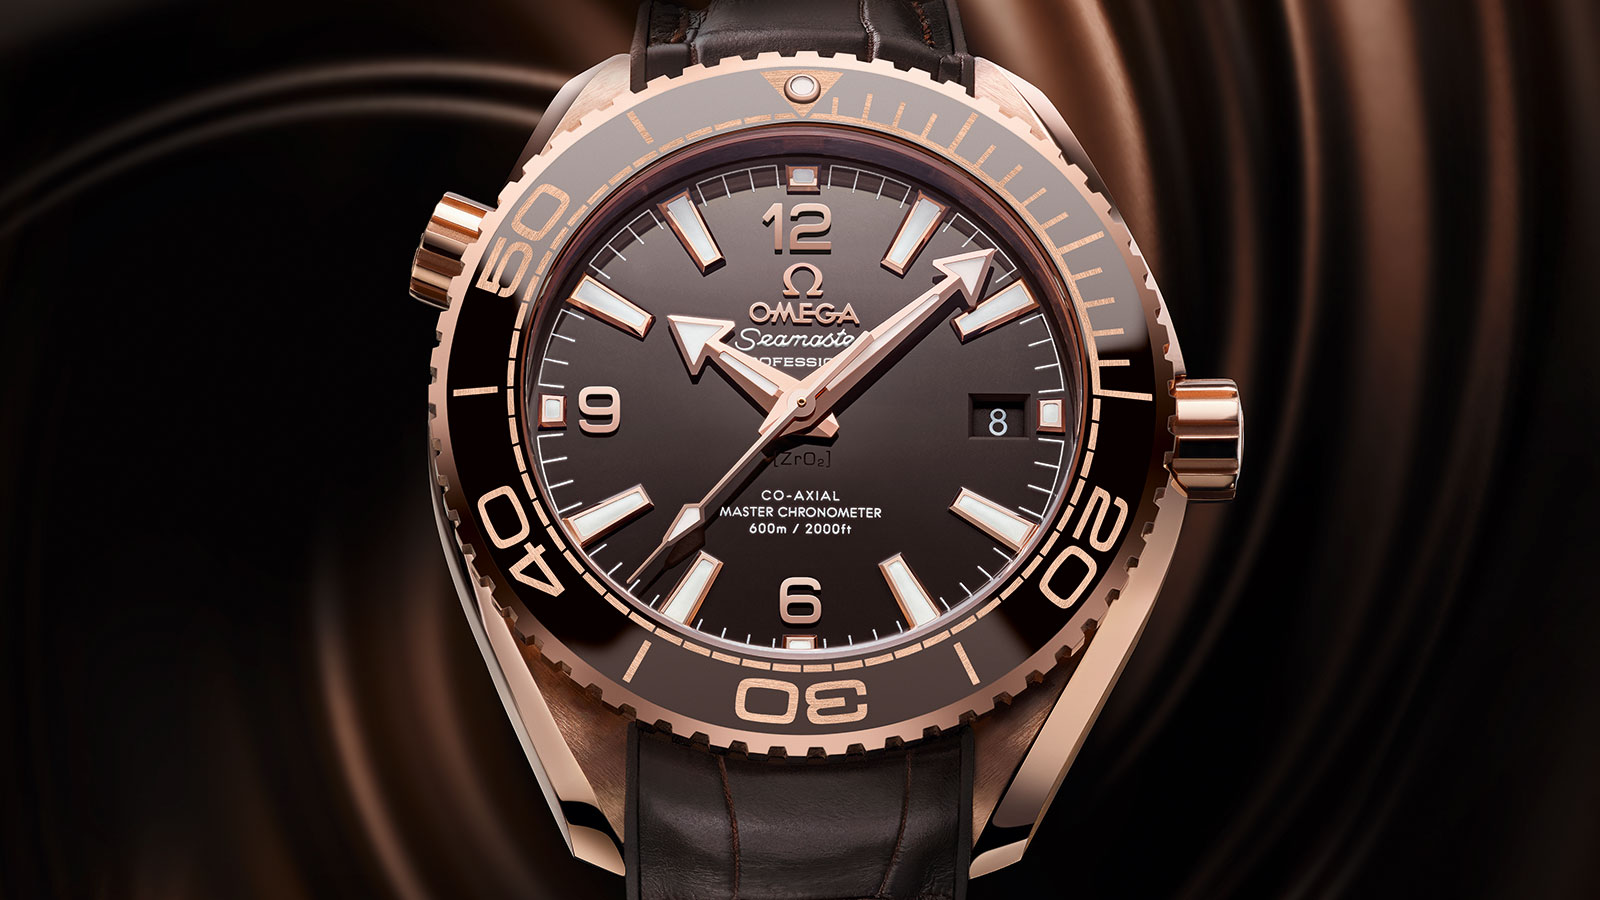 海馬系列 Planet Ocean 600米 Planet Ocean 600米 歐米茄Co‑Axial Master Chronometer 39.5毫米 腕表 - 215.63.40.20.13.001